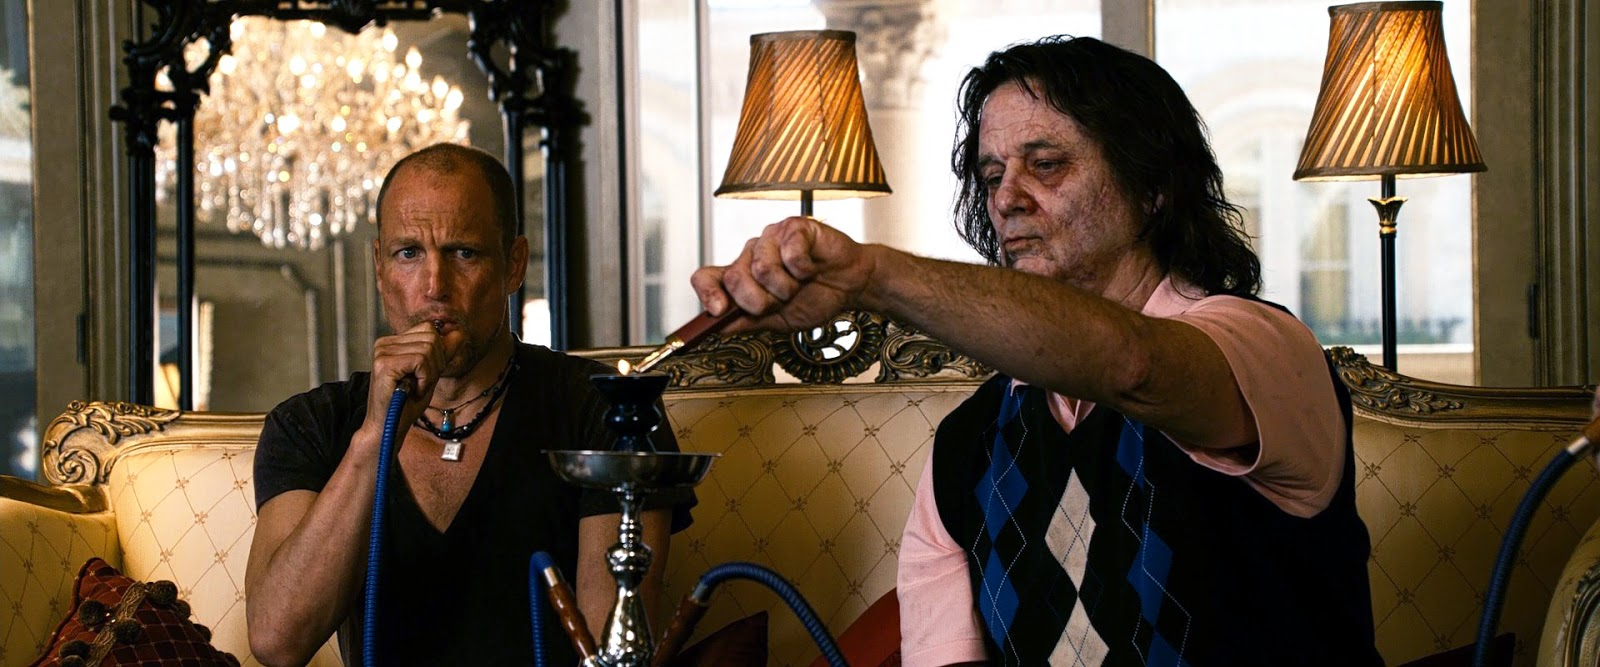 This is an image from the film, Zombieland.